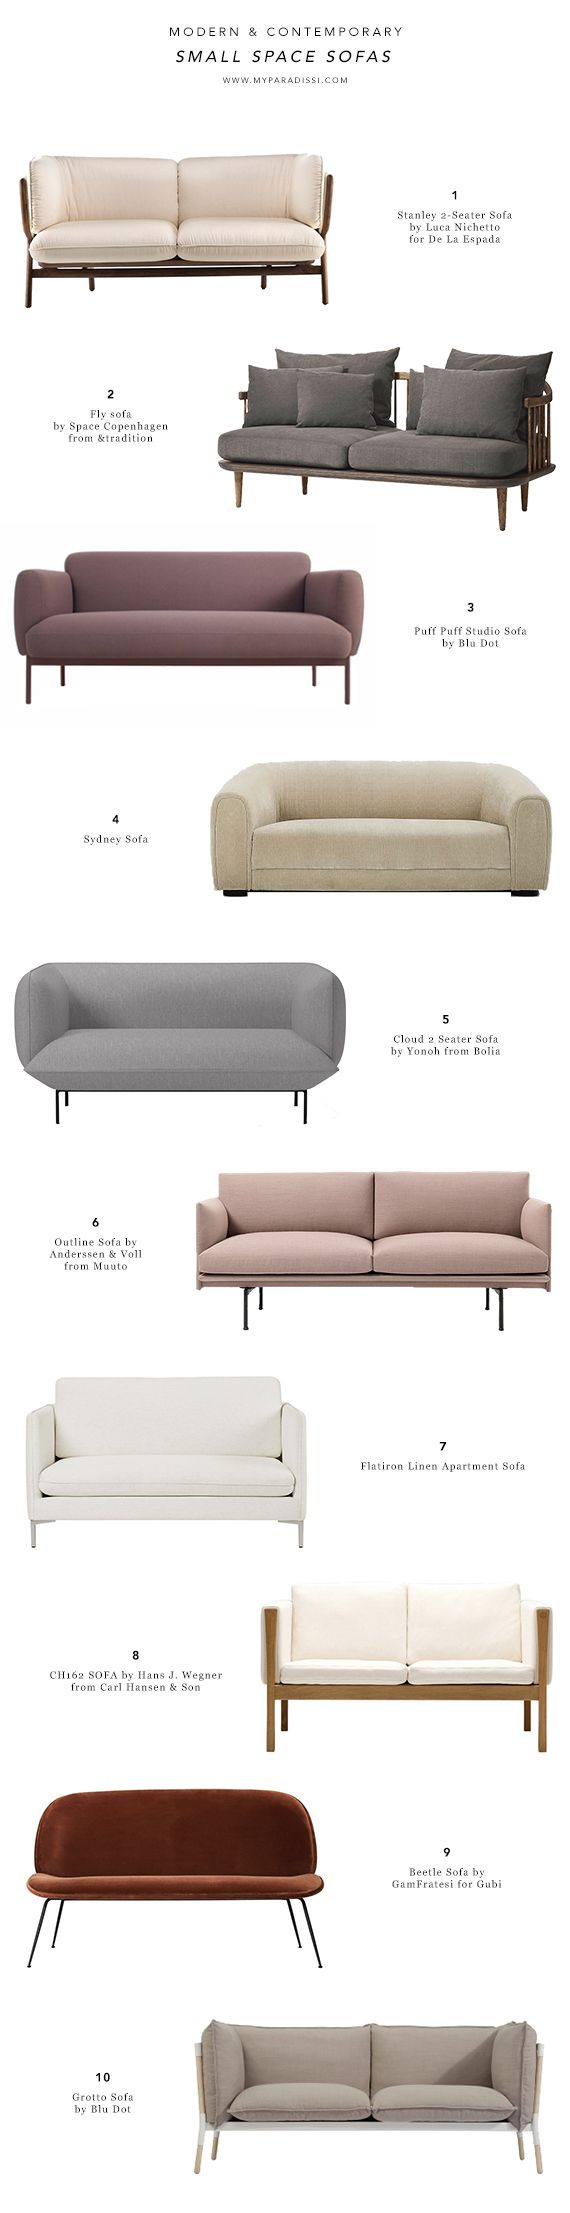 Best Small Sofa Ideas On Pinterest Tiny Apartment Decorating - Modern sofas for small spaces